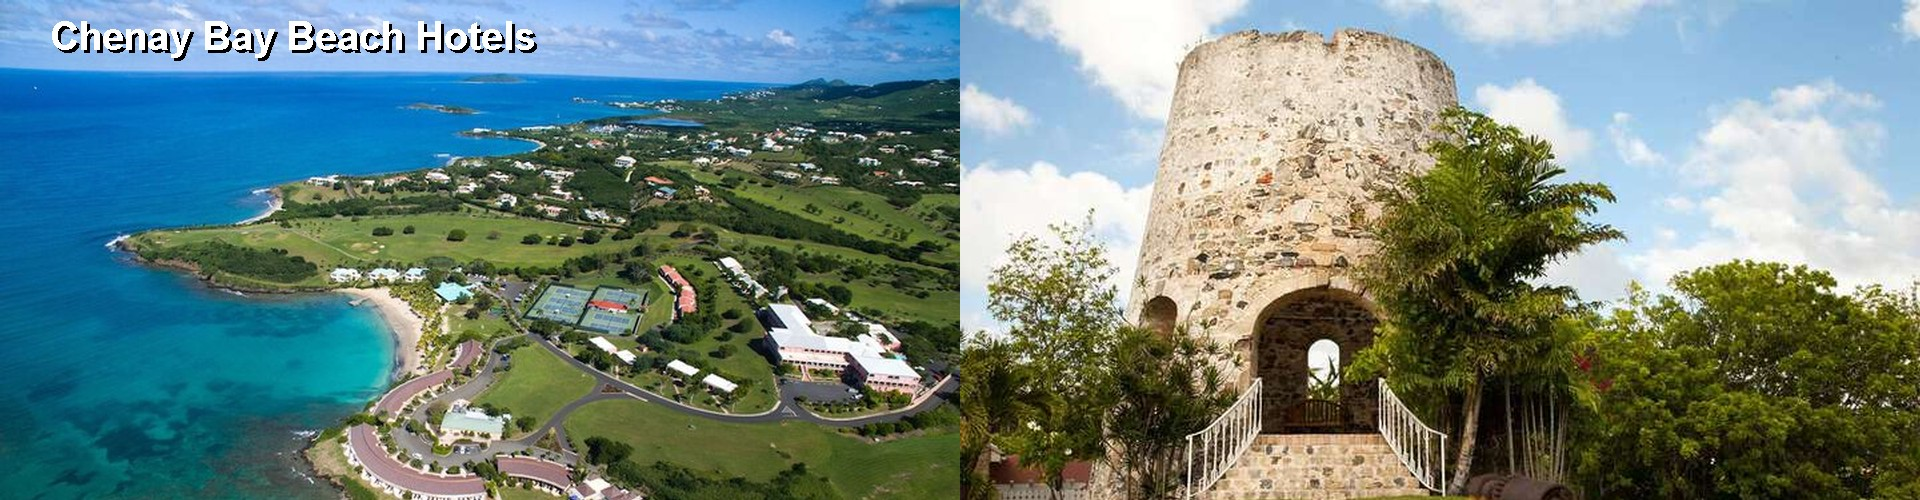 62 Hotels Near Chenay Bay Beach In Christiansted